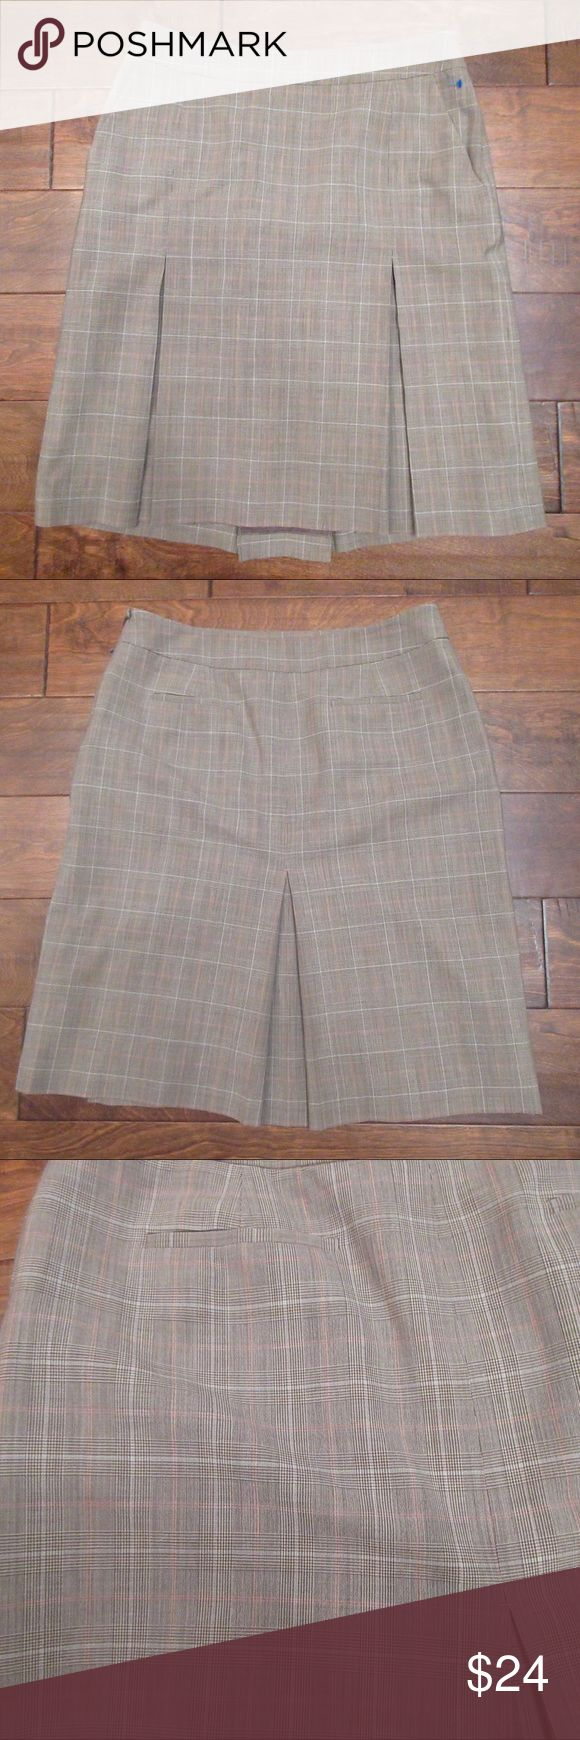 346 Brooks Brothers Brown Plaid Wool Short Skirt Size 10 96% Wool 4% Lycra Side zipper Brown, Beige, Blue, White & Pink plaid Lined  Pockets Great condition Brooks Brothers Skirts Mini